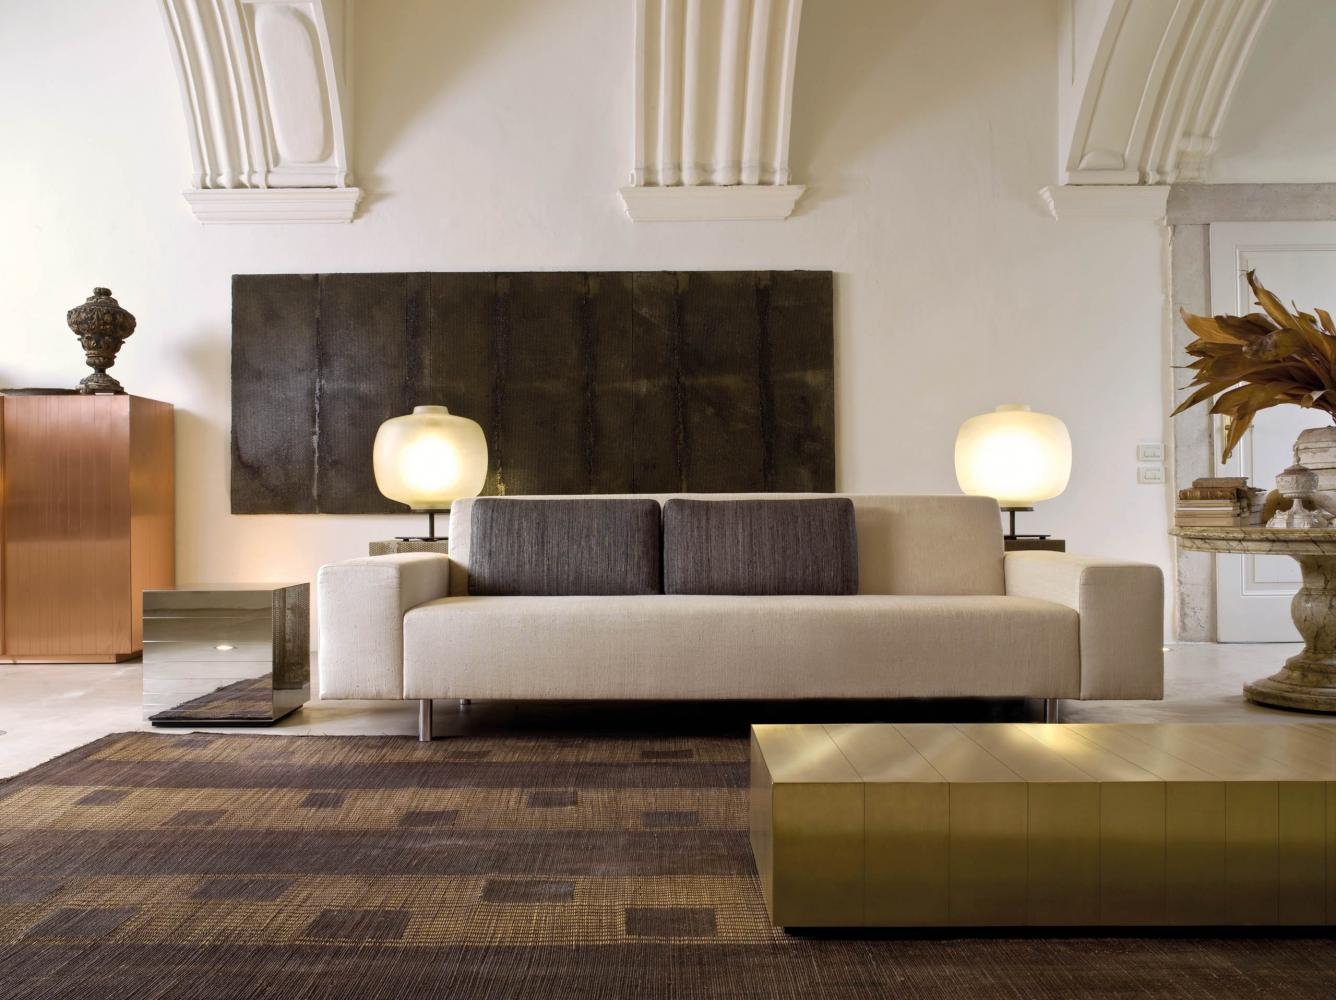 Presto is a modern sofa with minimal design available in leather, fabric or velvet